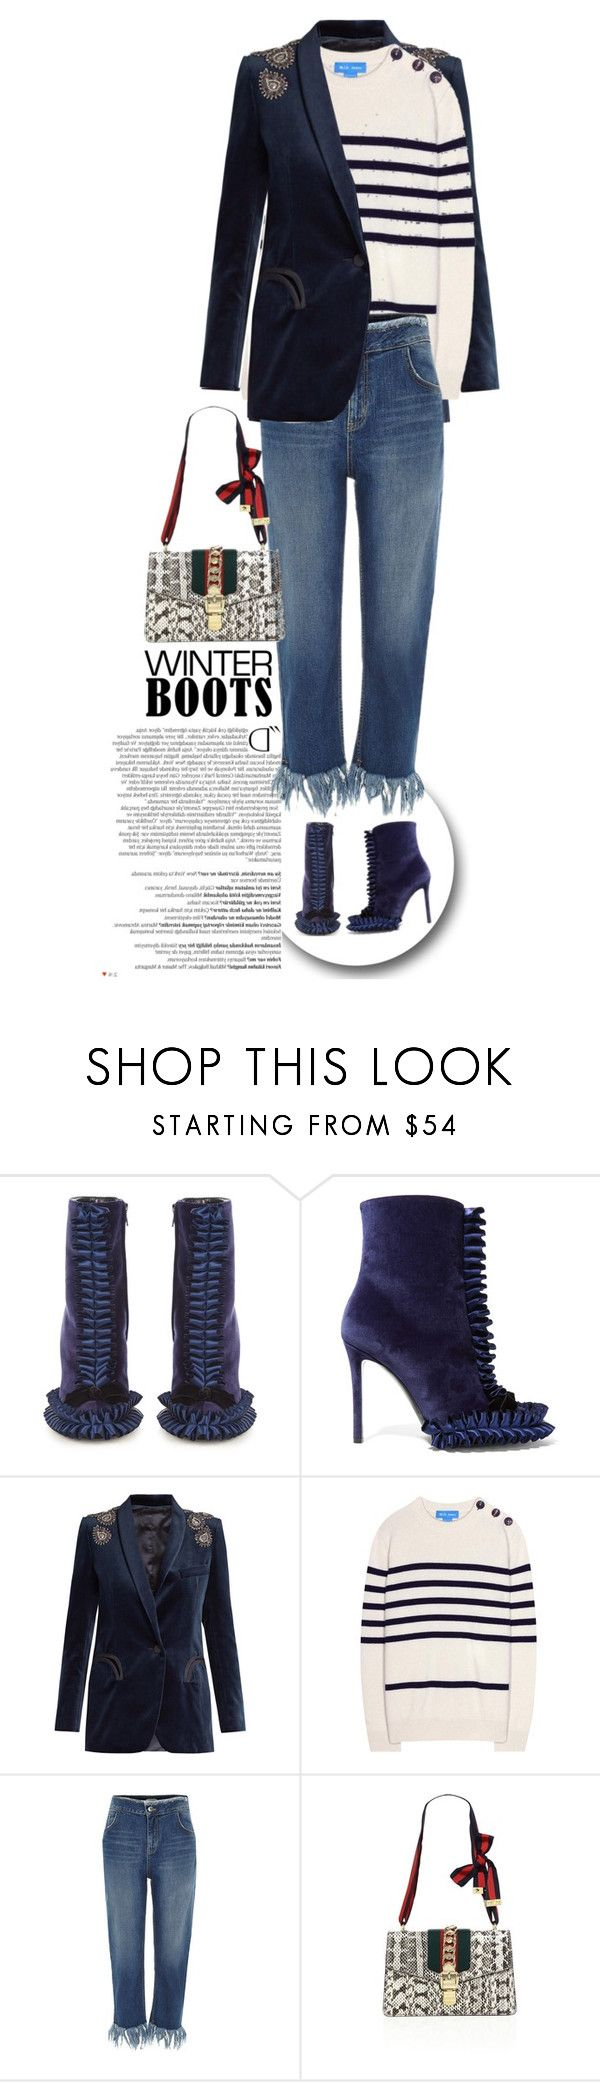 """""""Marco De Vincenzo Ruffled satin and velvet ankle boots"""" by esterp ❤ liked on Polyvore featuring Marco de Vincenzo, Balmain, Blazé Milano, M.i.h Jeans, River Island and Gucci"""